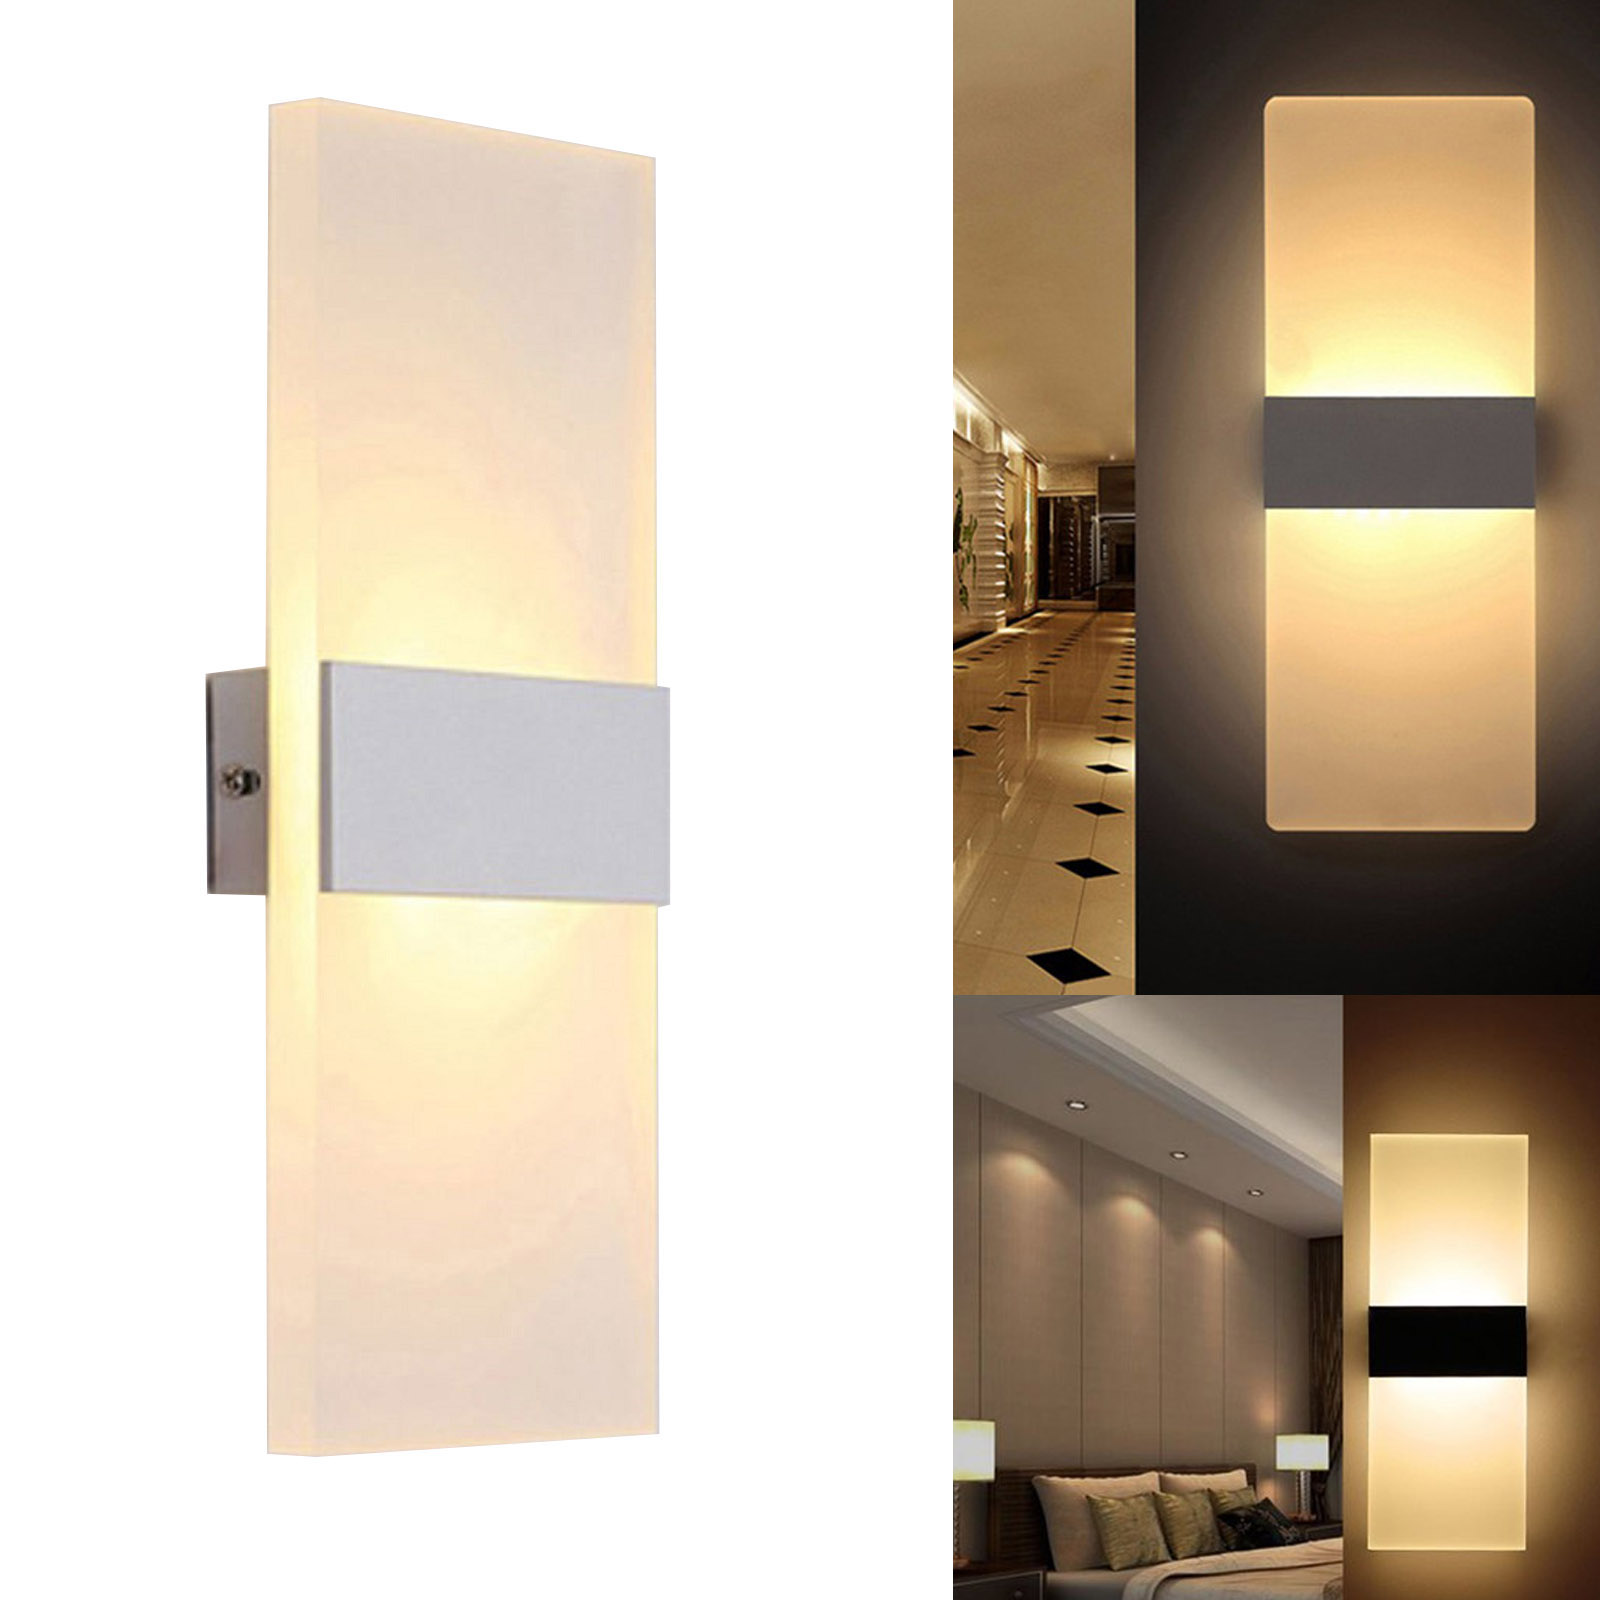 Applique LED 8W lamp modern wall frosted glass light wall input 220V IP20